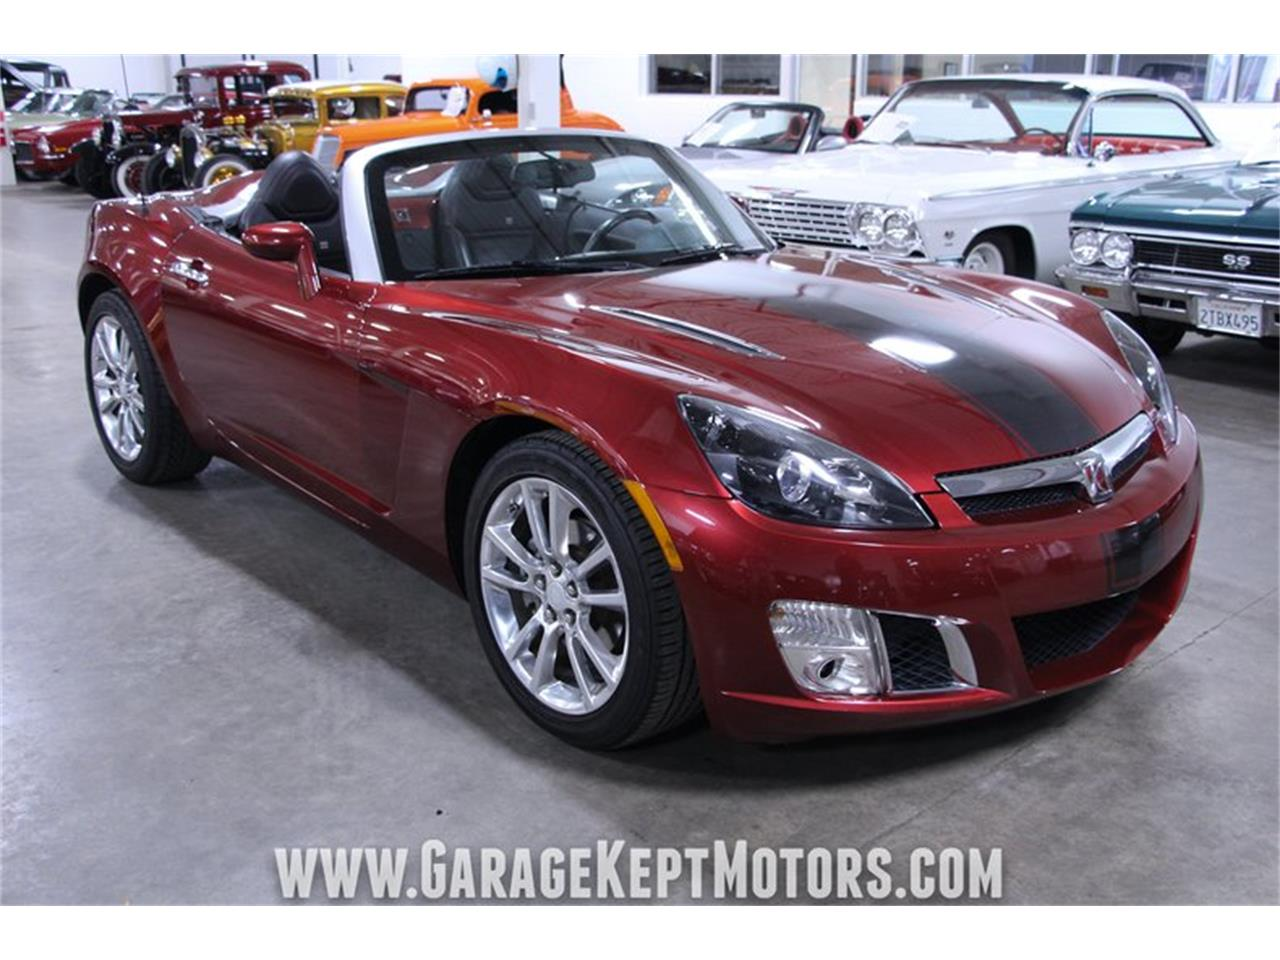 2009 Saturn Sky for sale in Grand Rapids, MI – photo 28